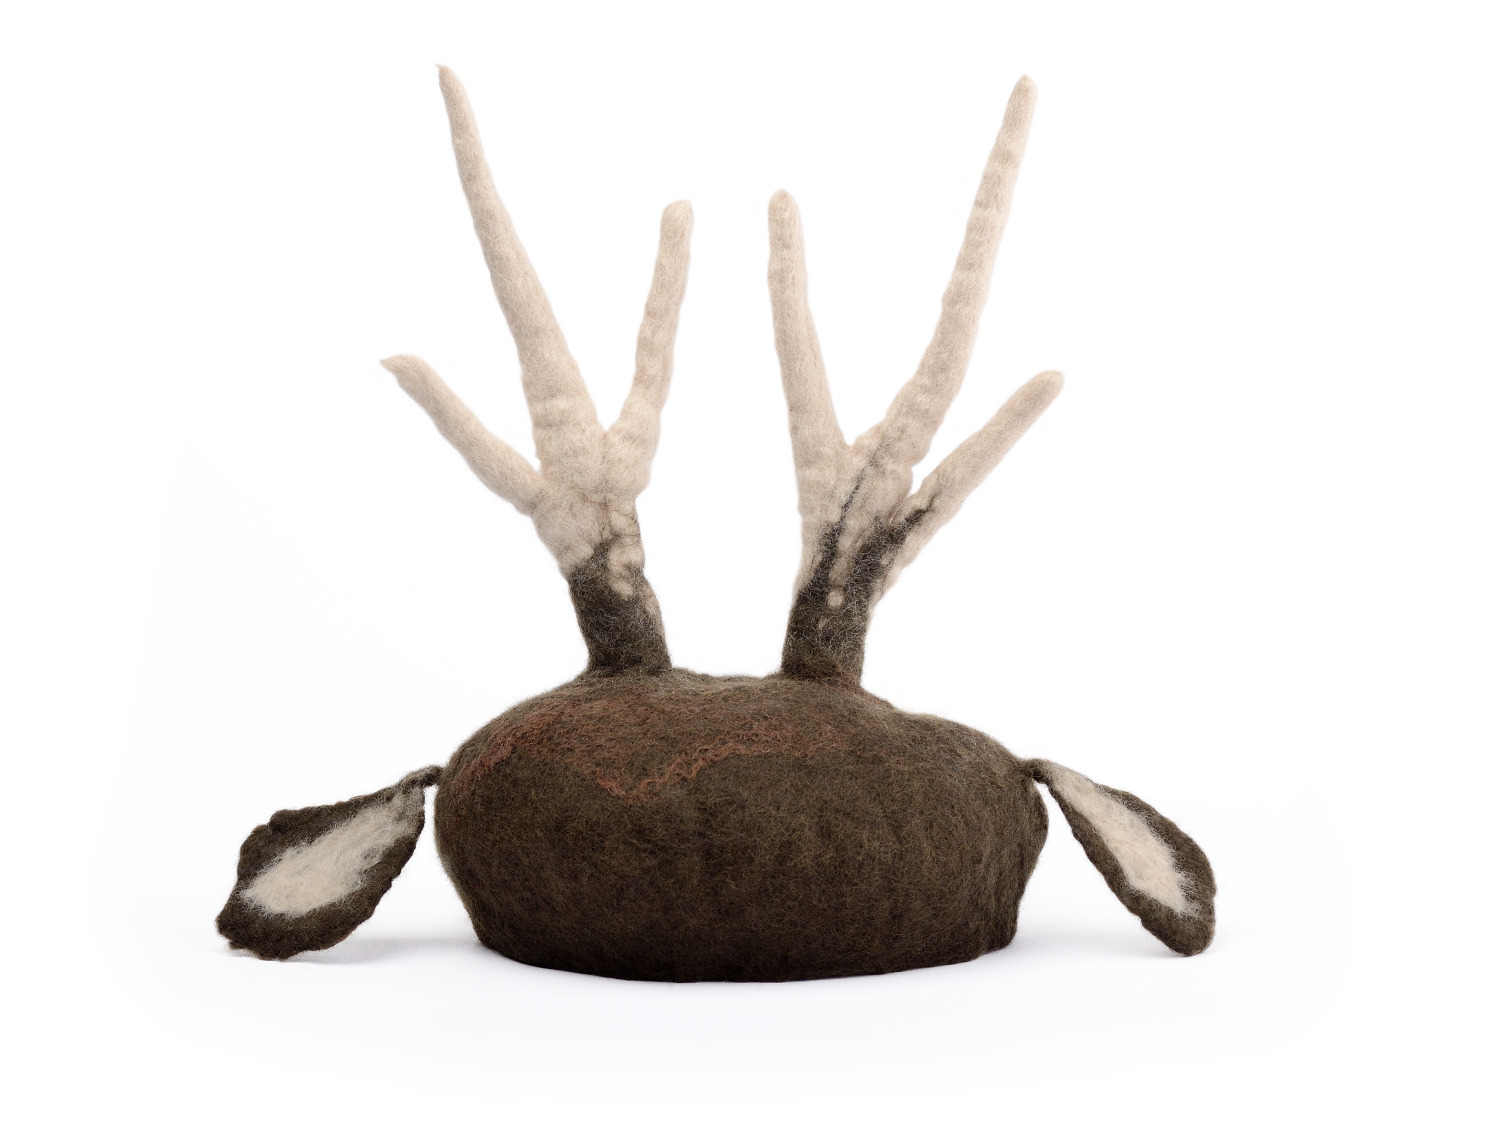 4443d0134150db Newborn Baby Photo Prop - Felted Deer Hat with Antler